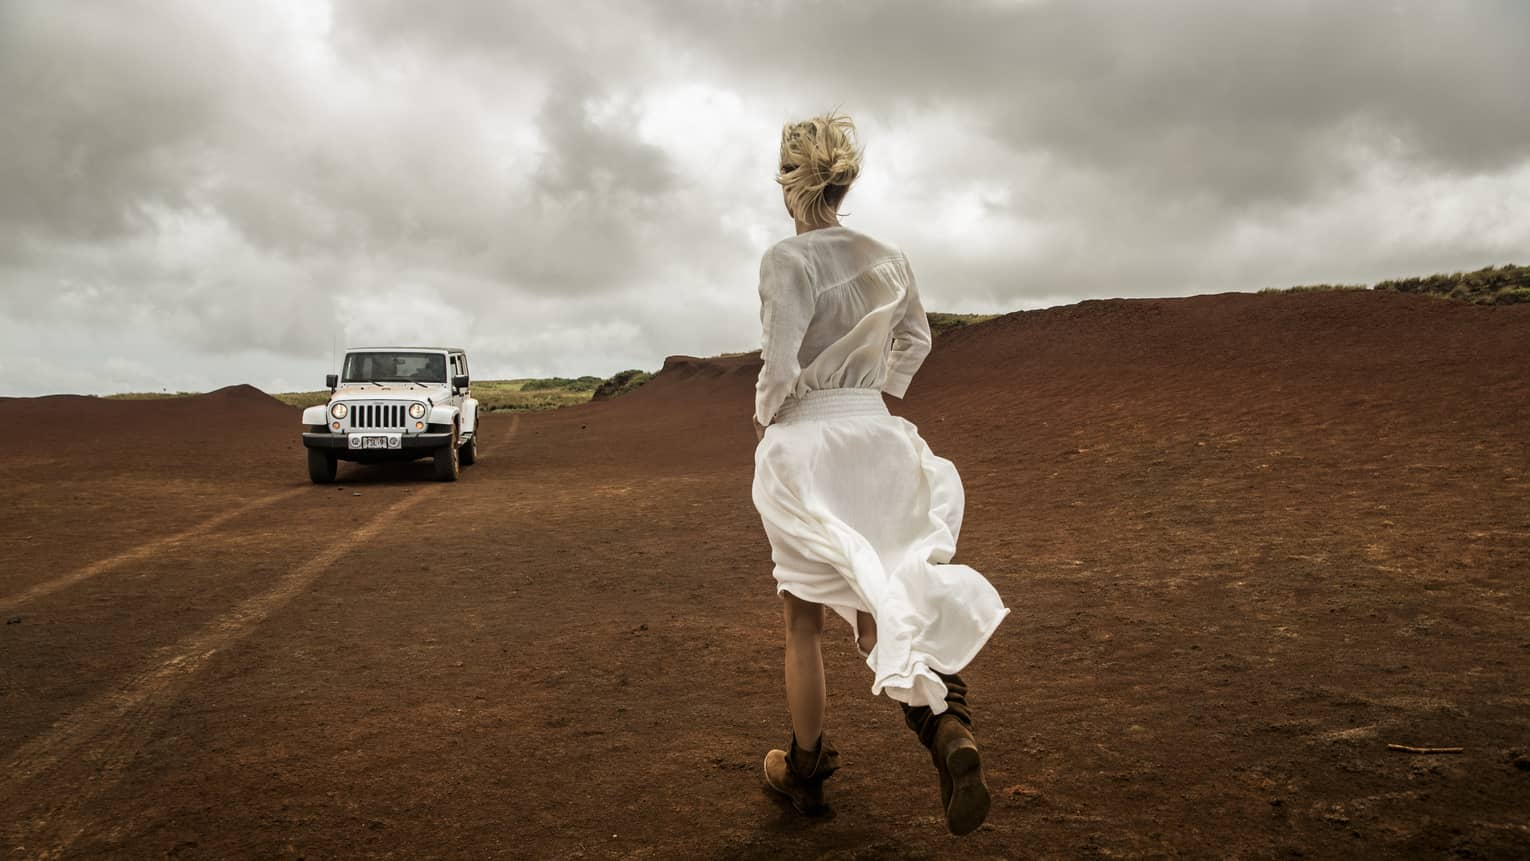 A white jeep approaches a woman on a windy day